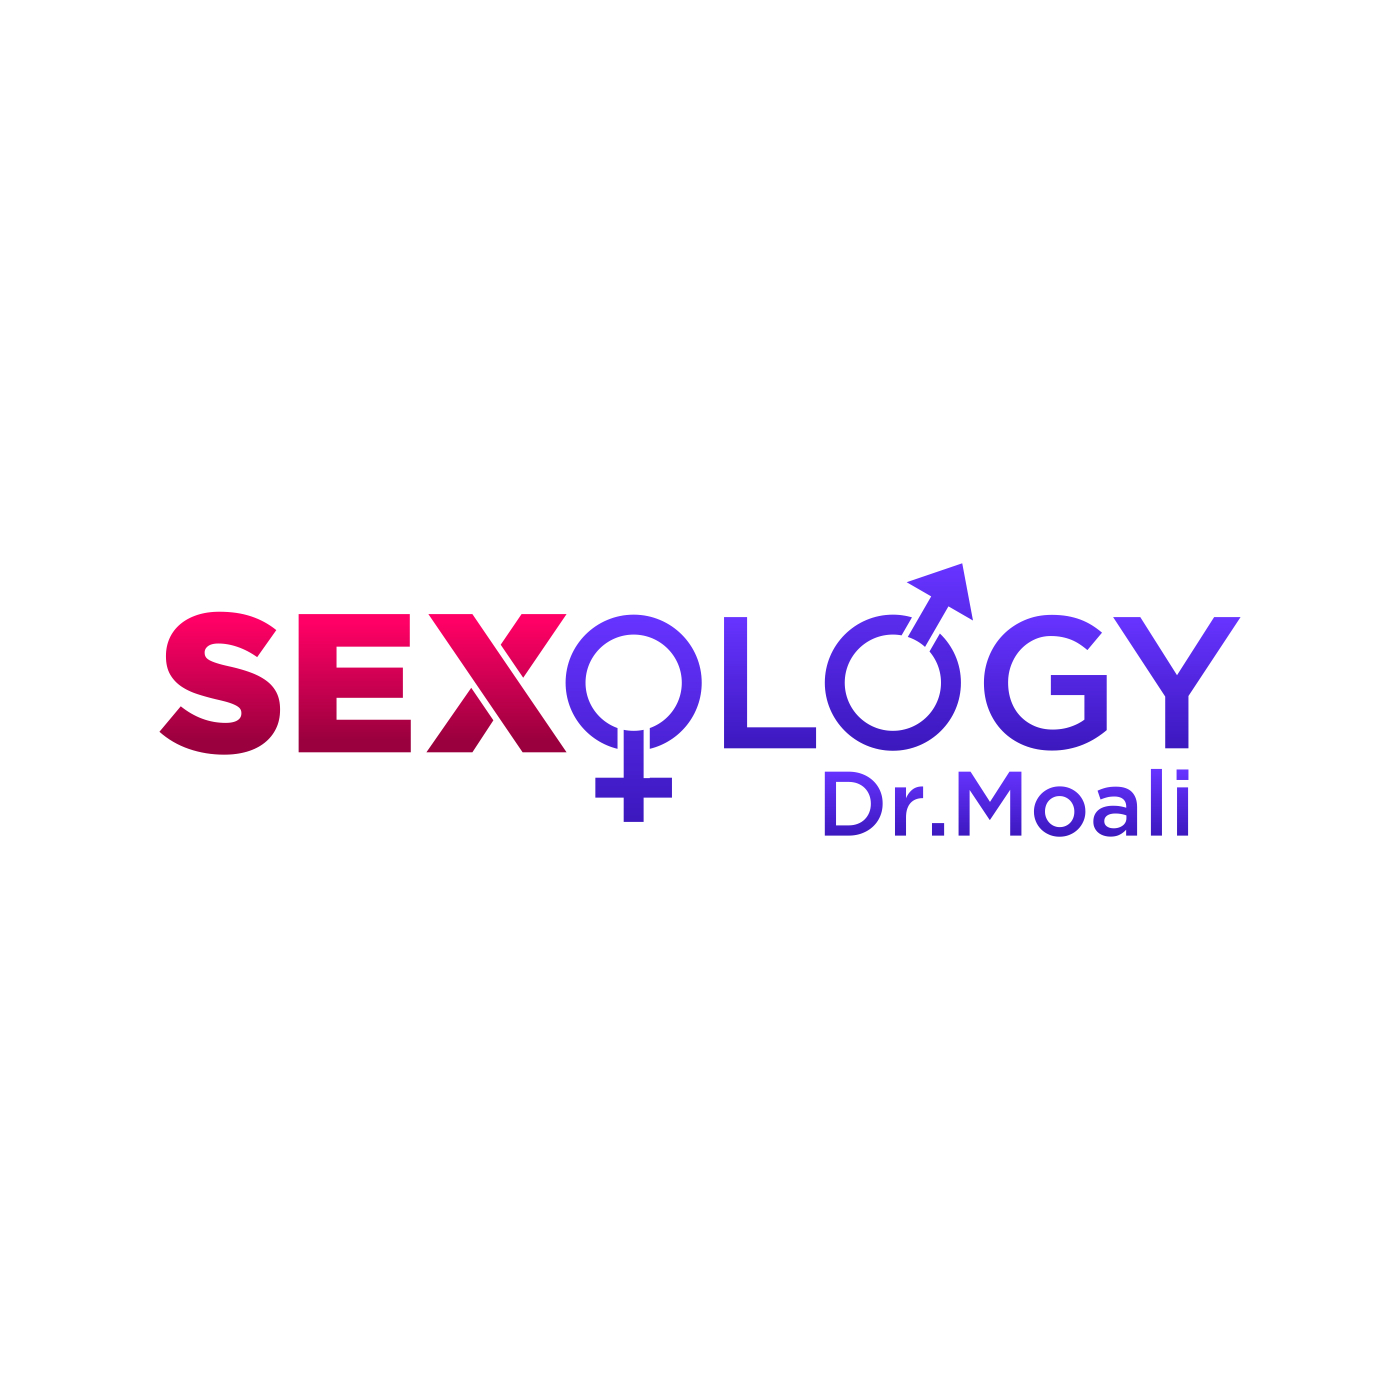 EP245 - What It's Like to Design Sex Toys for a Living with Dr. Soum Rakshit  show art